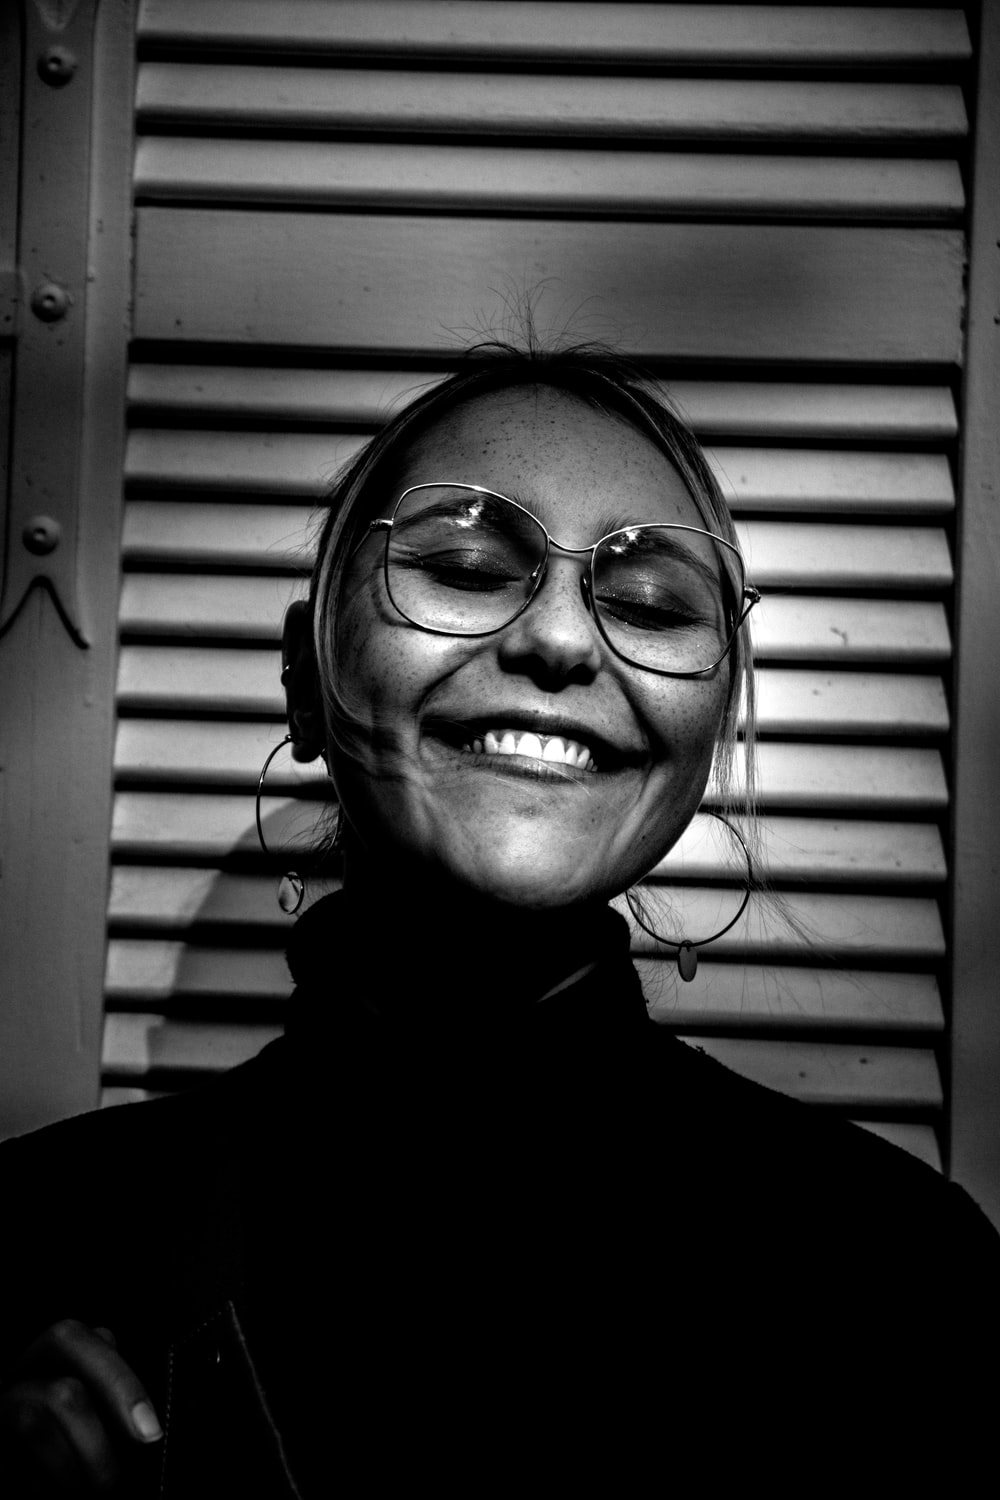 grayscale photography of smiling woman wearing turtle-neck top